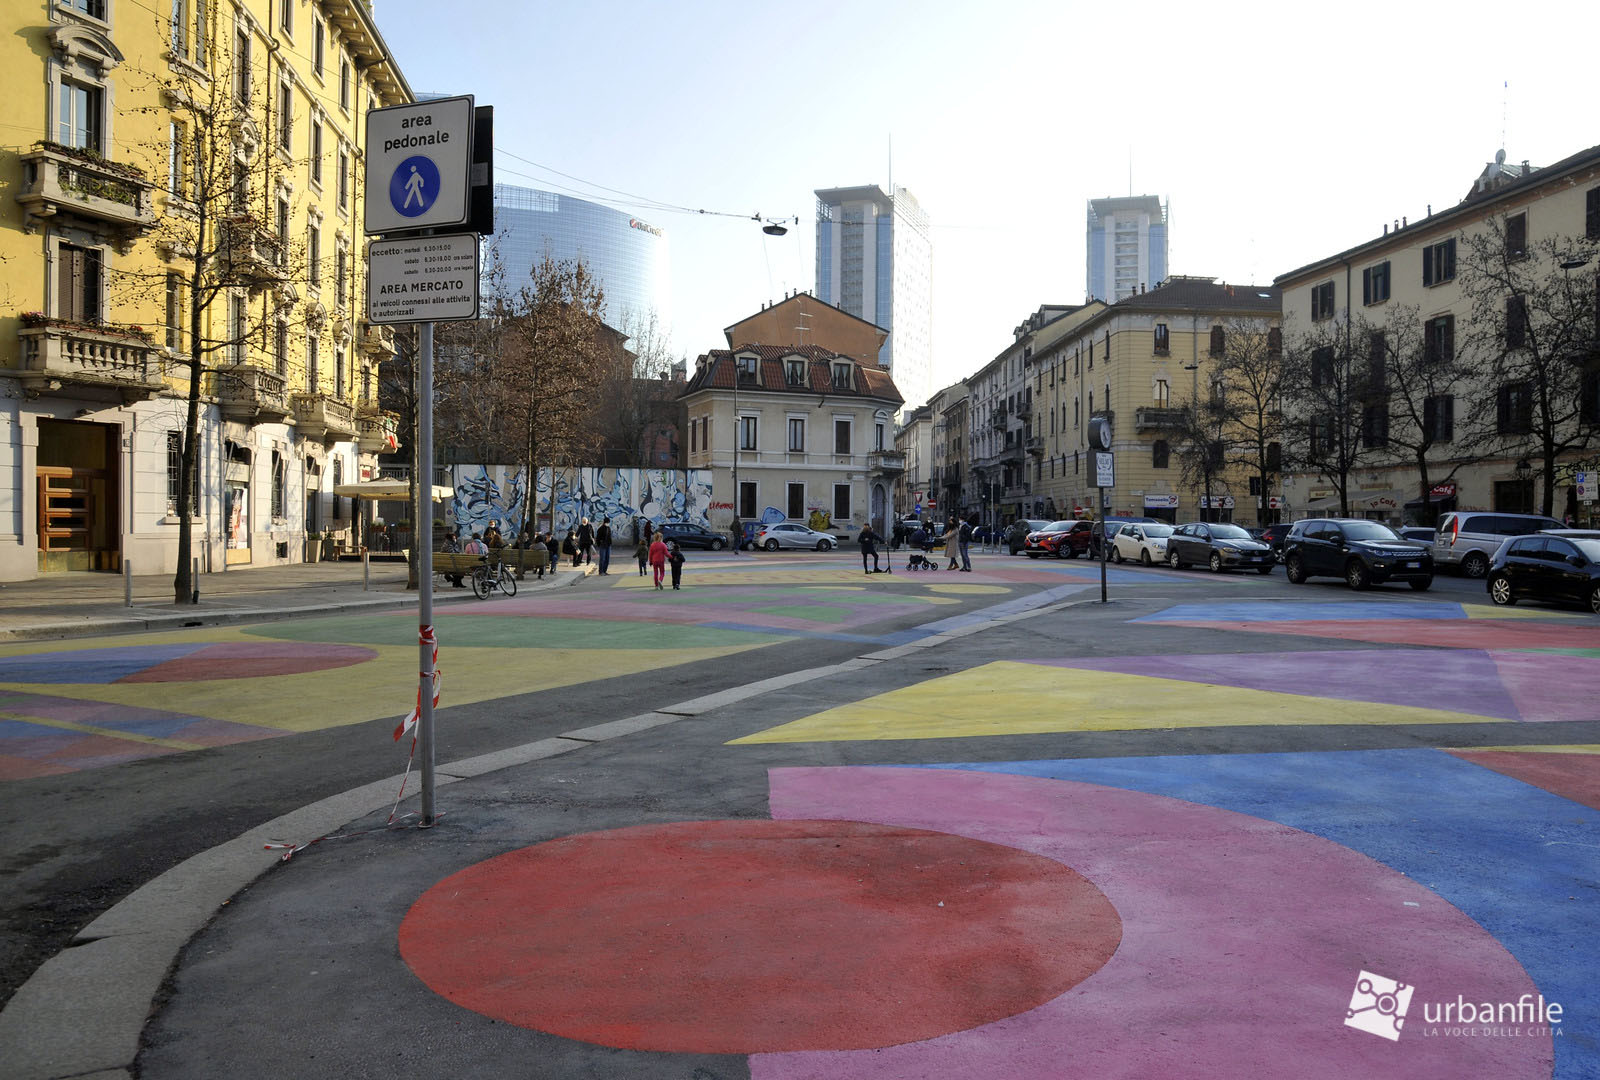 Piazze Aperte: Milan is giving its squares back to residents